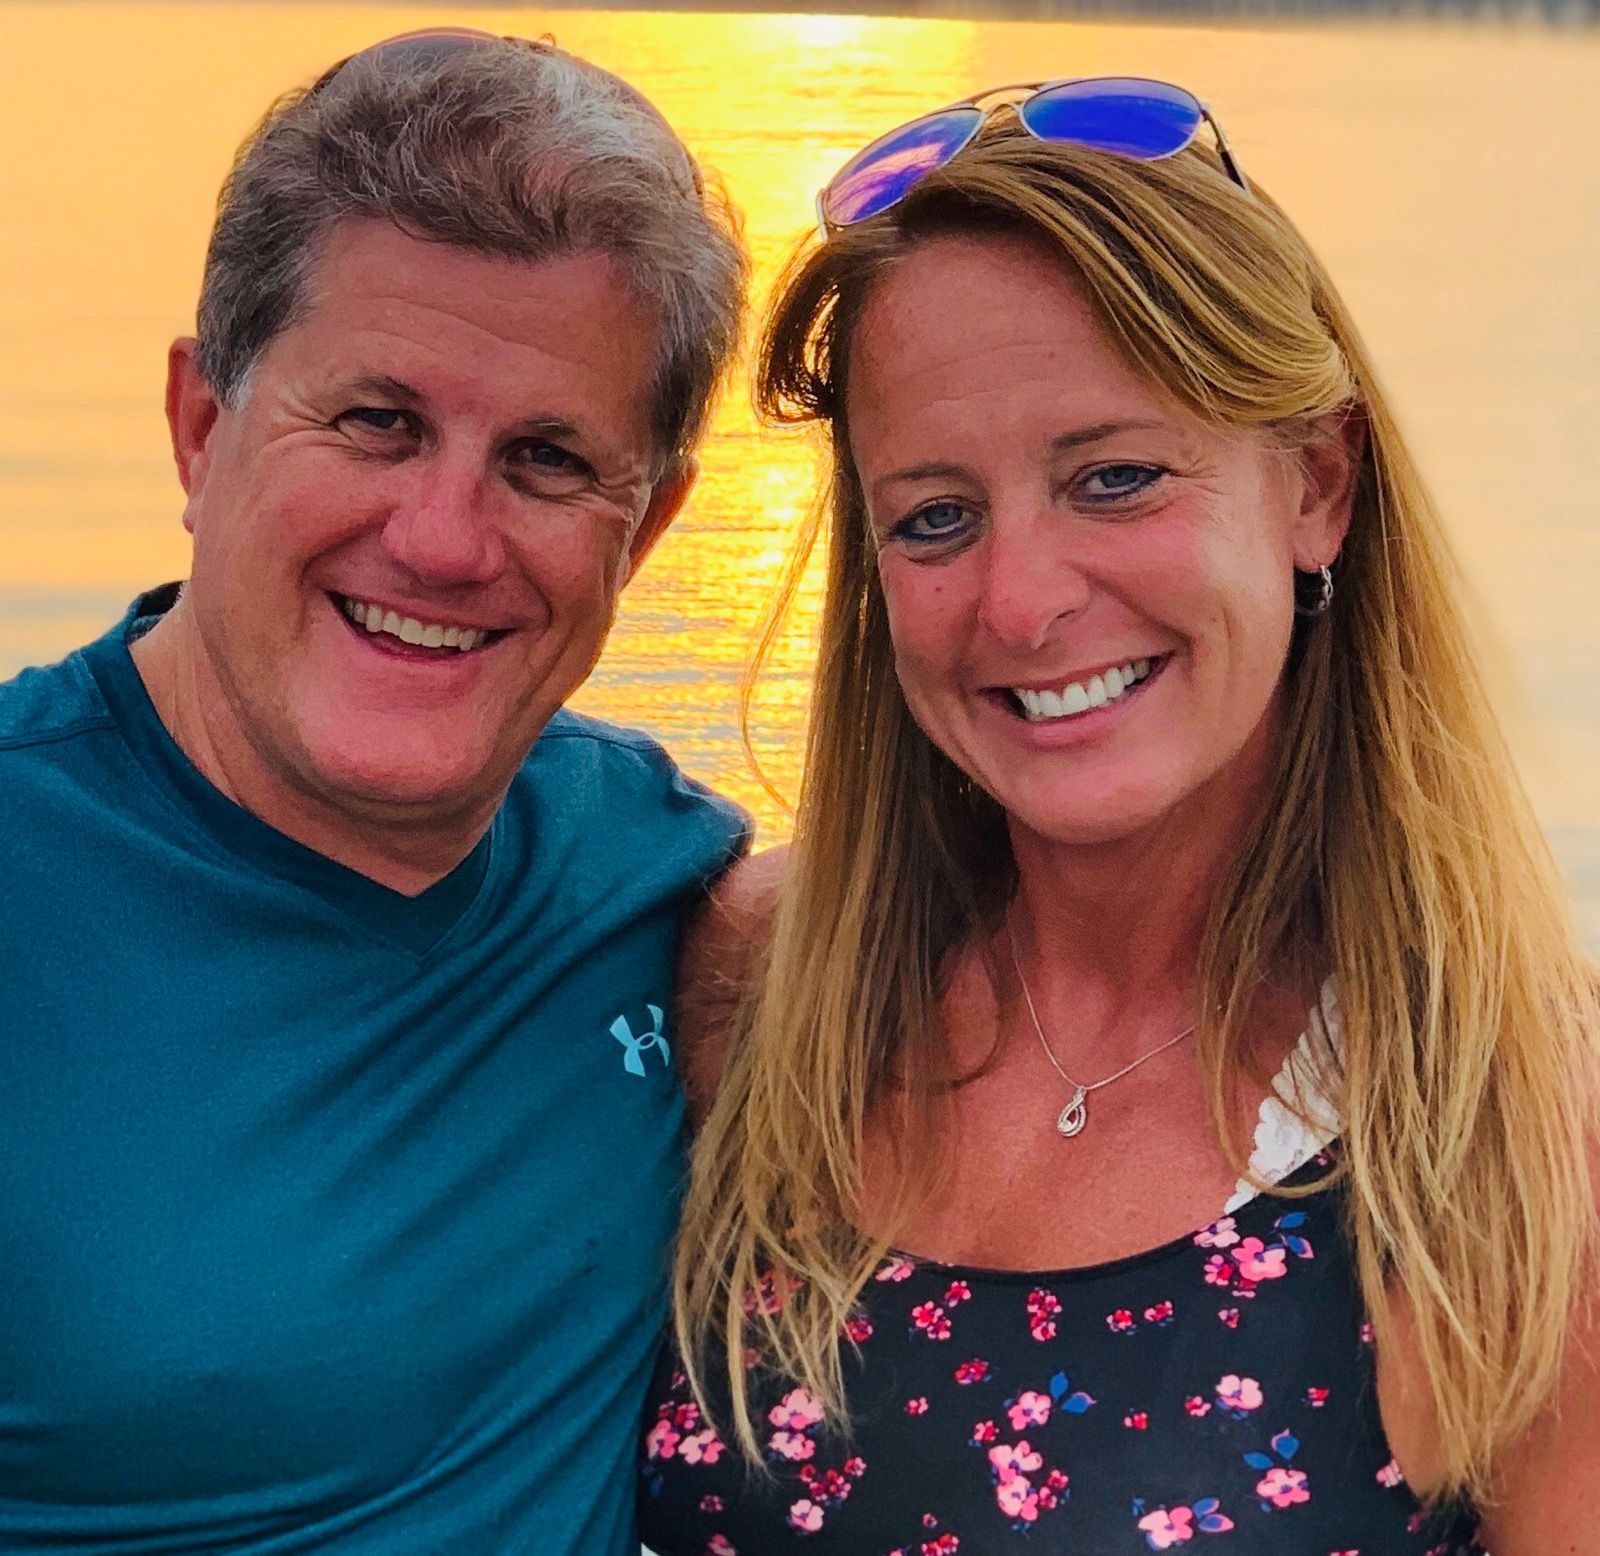 Your New Travel Guide. Kurt and Melissa Godwin Start Discovery Map of Southwest Florida